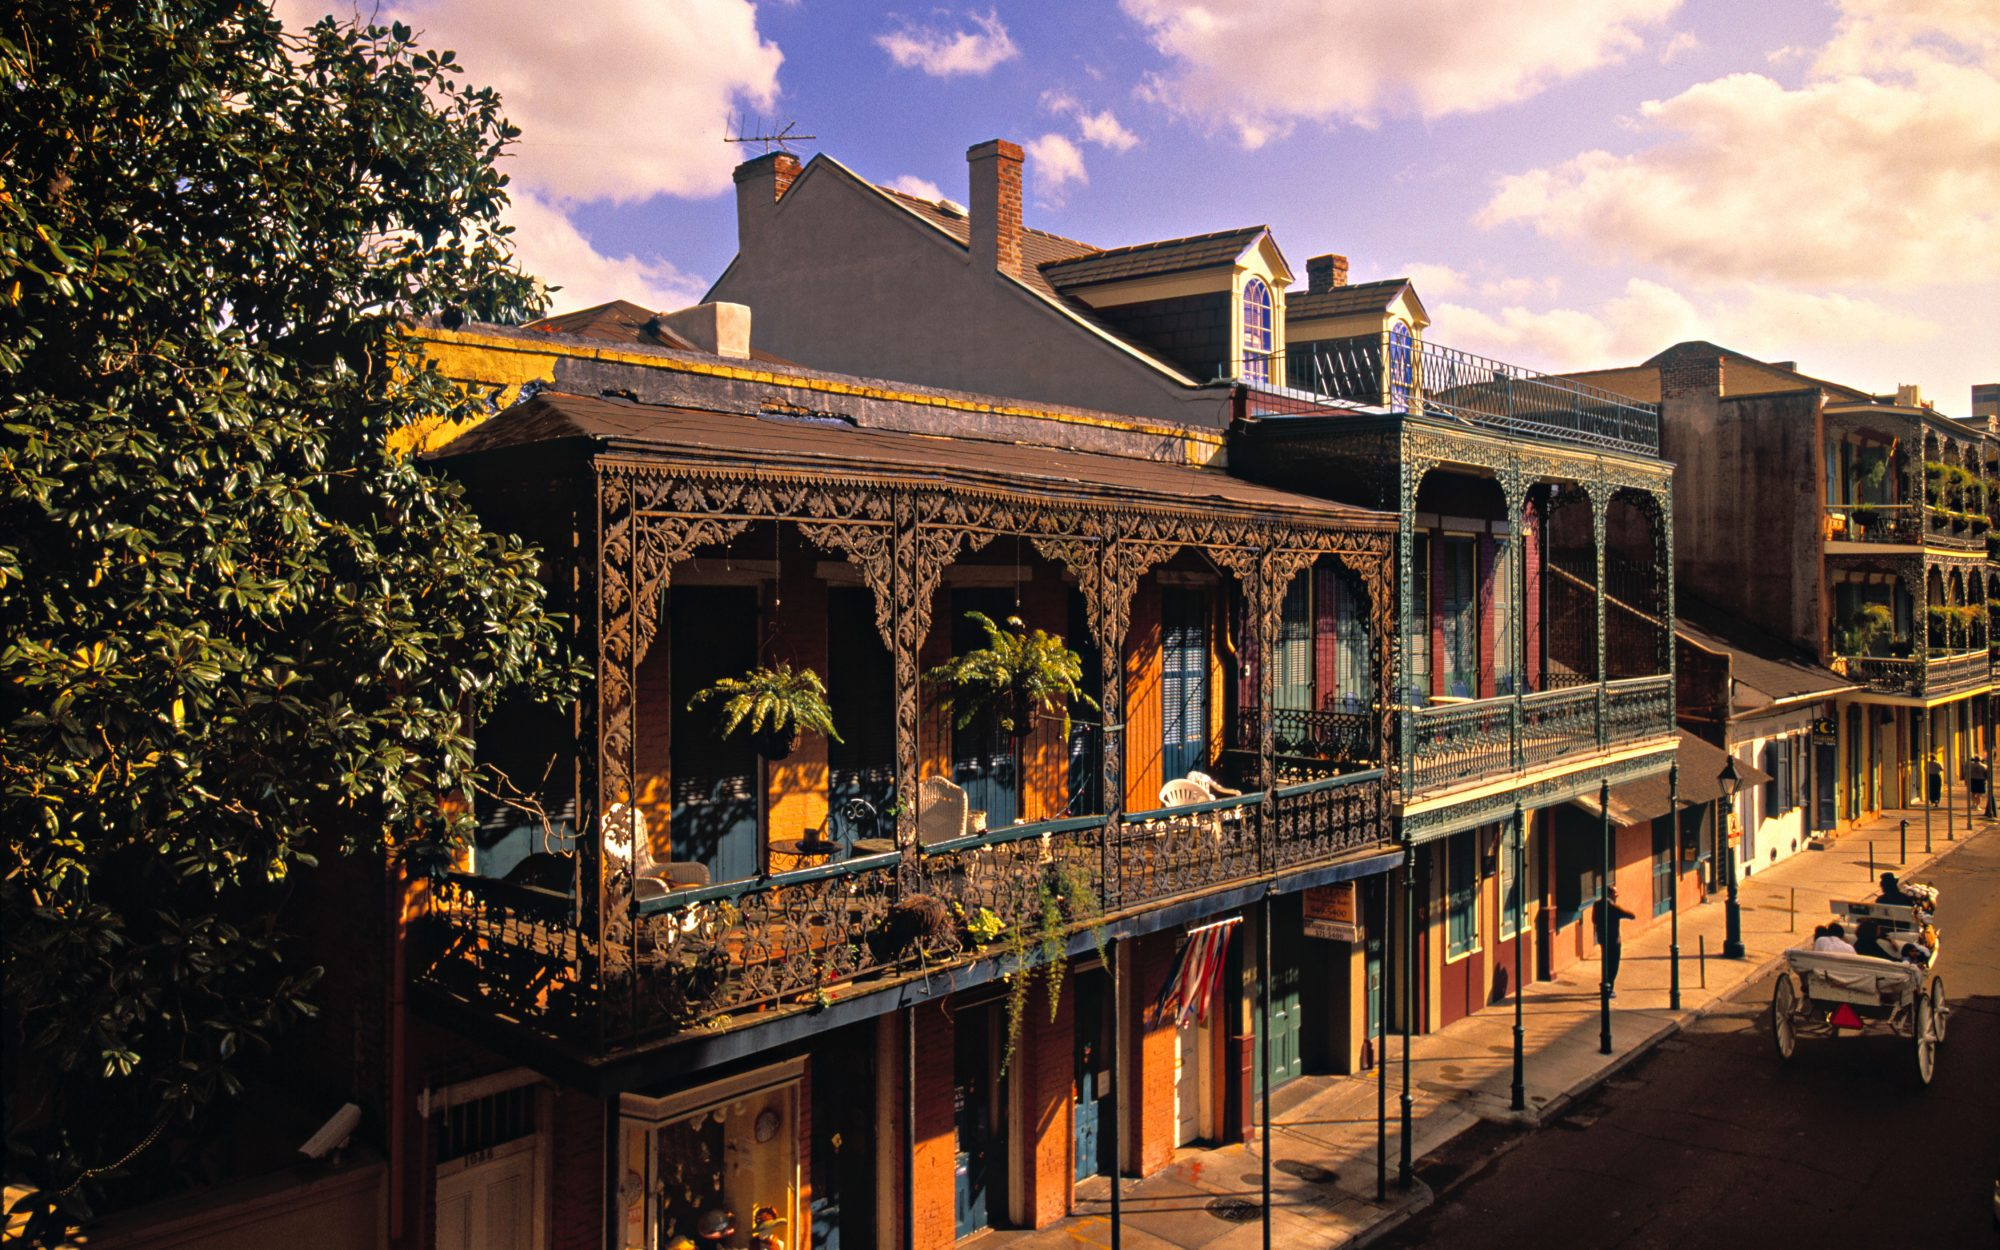 America's Most Romantic Cities: No. 4 New Orleans